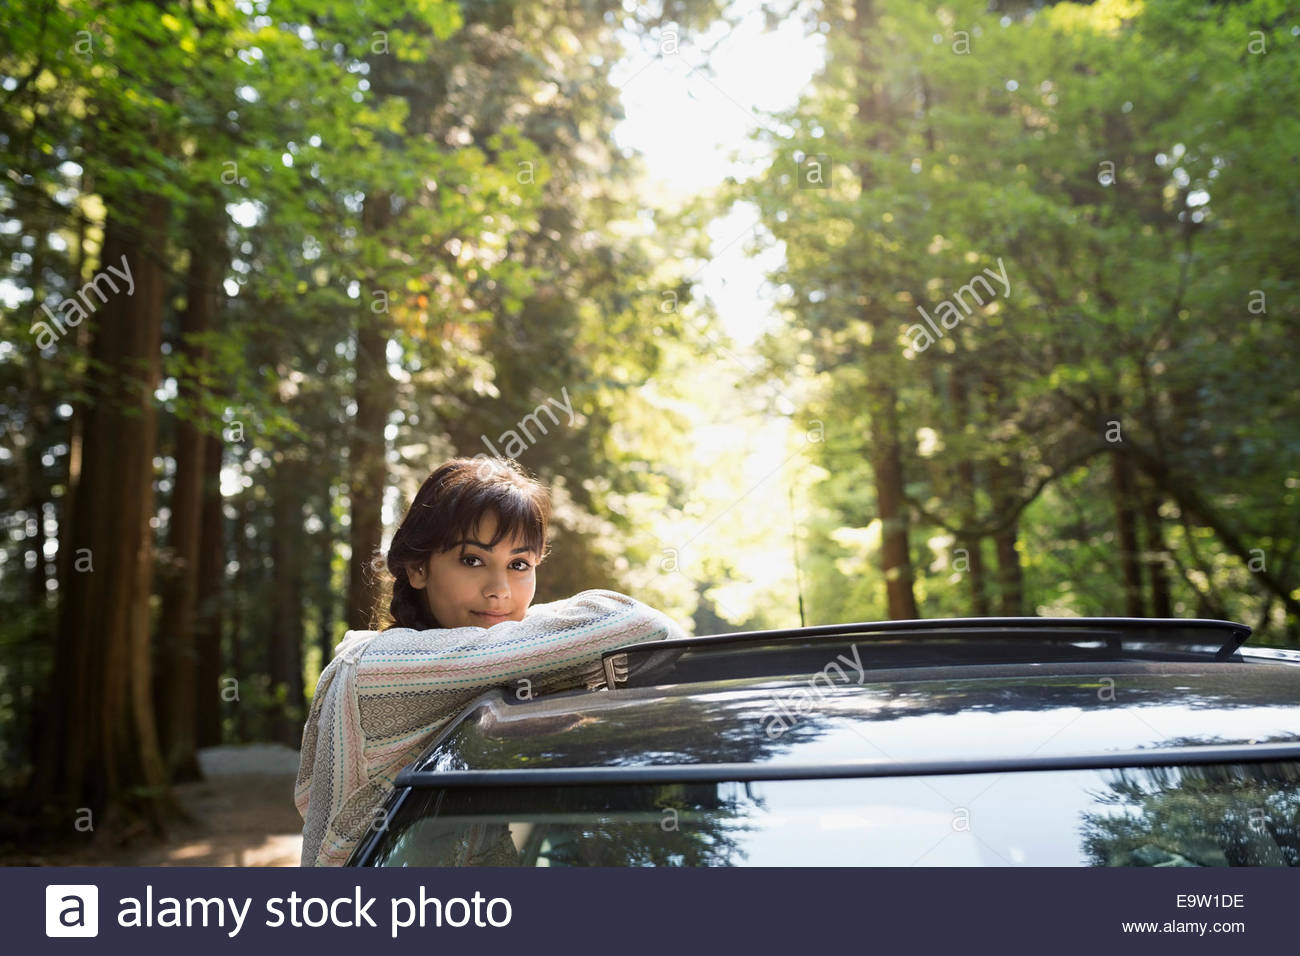 Portrait of woman leaning on car in woods - Stock Image